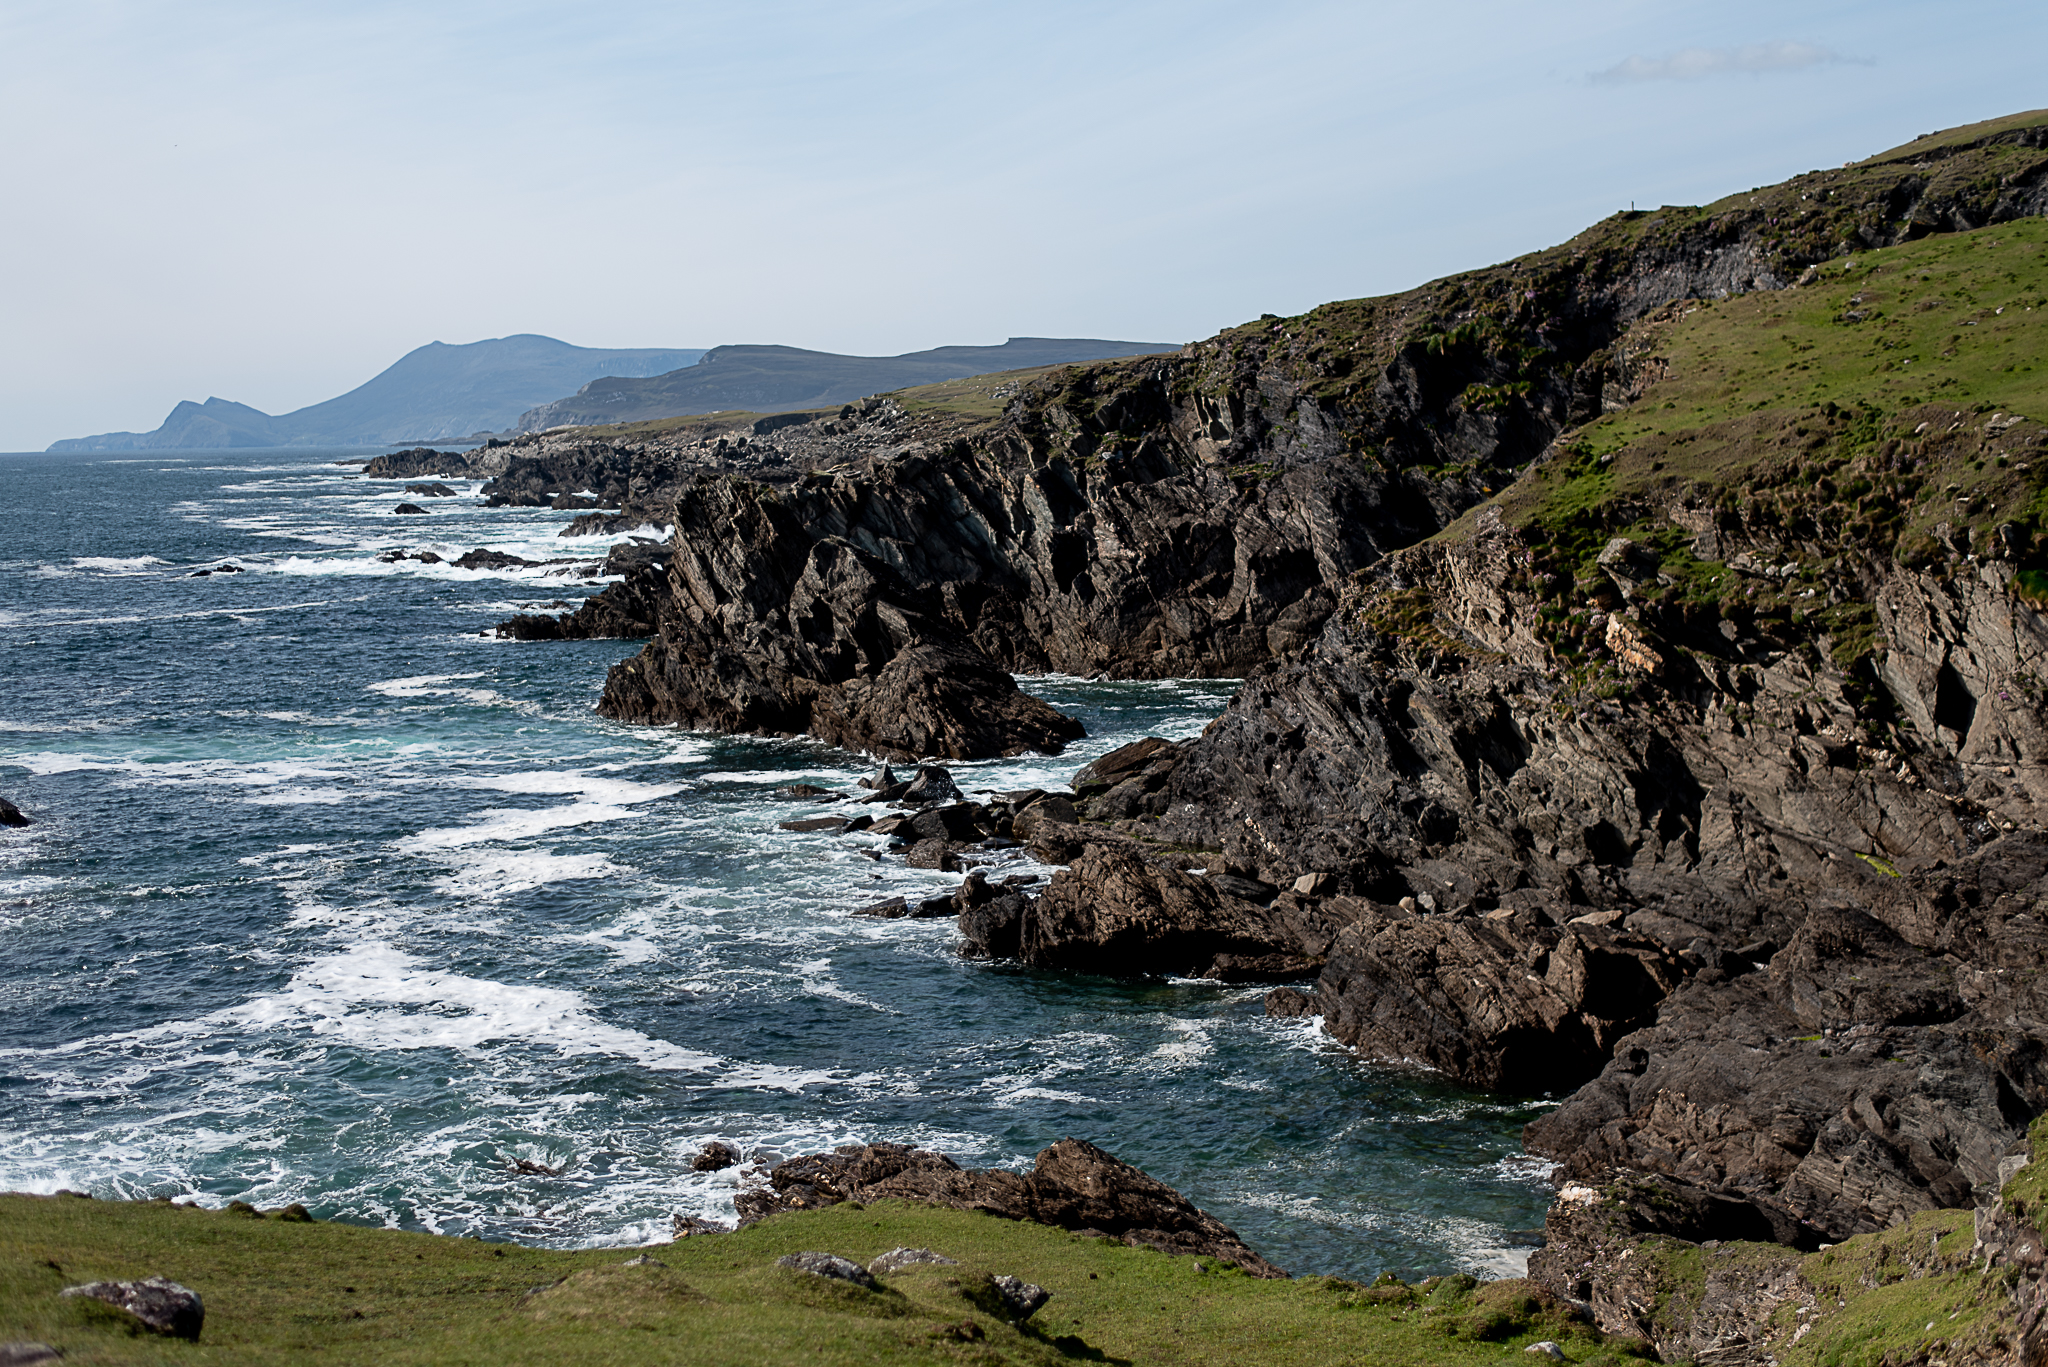 tinyboots, wild atlantic way, achill, ocean, cliffs, coastline, ireland